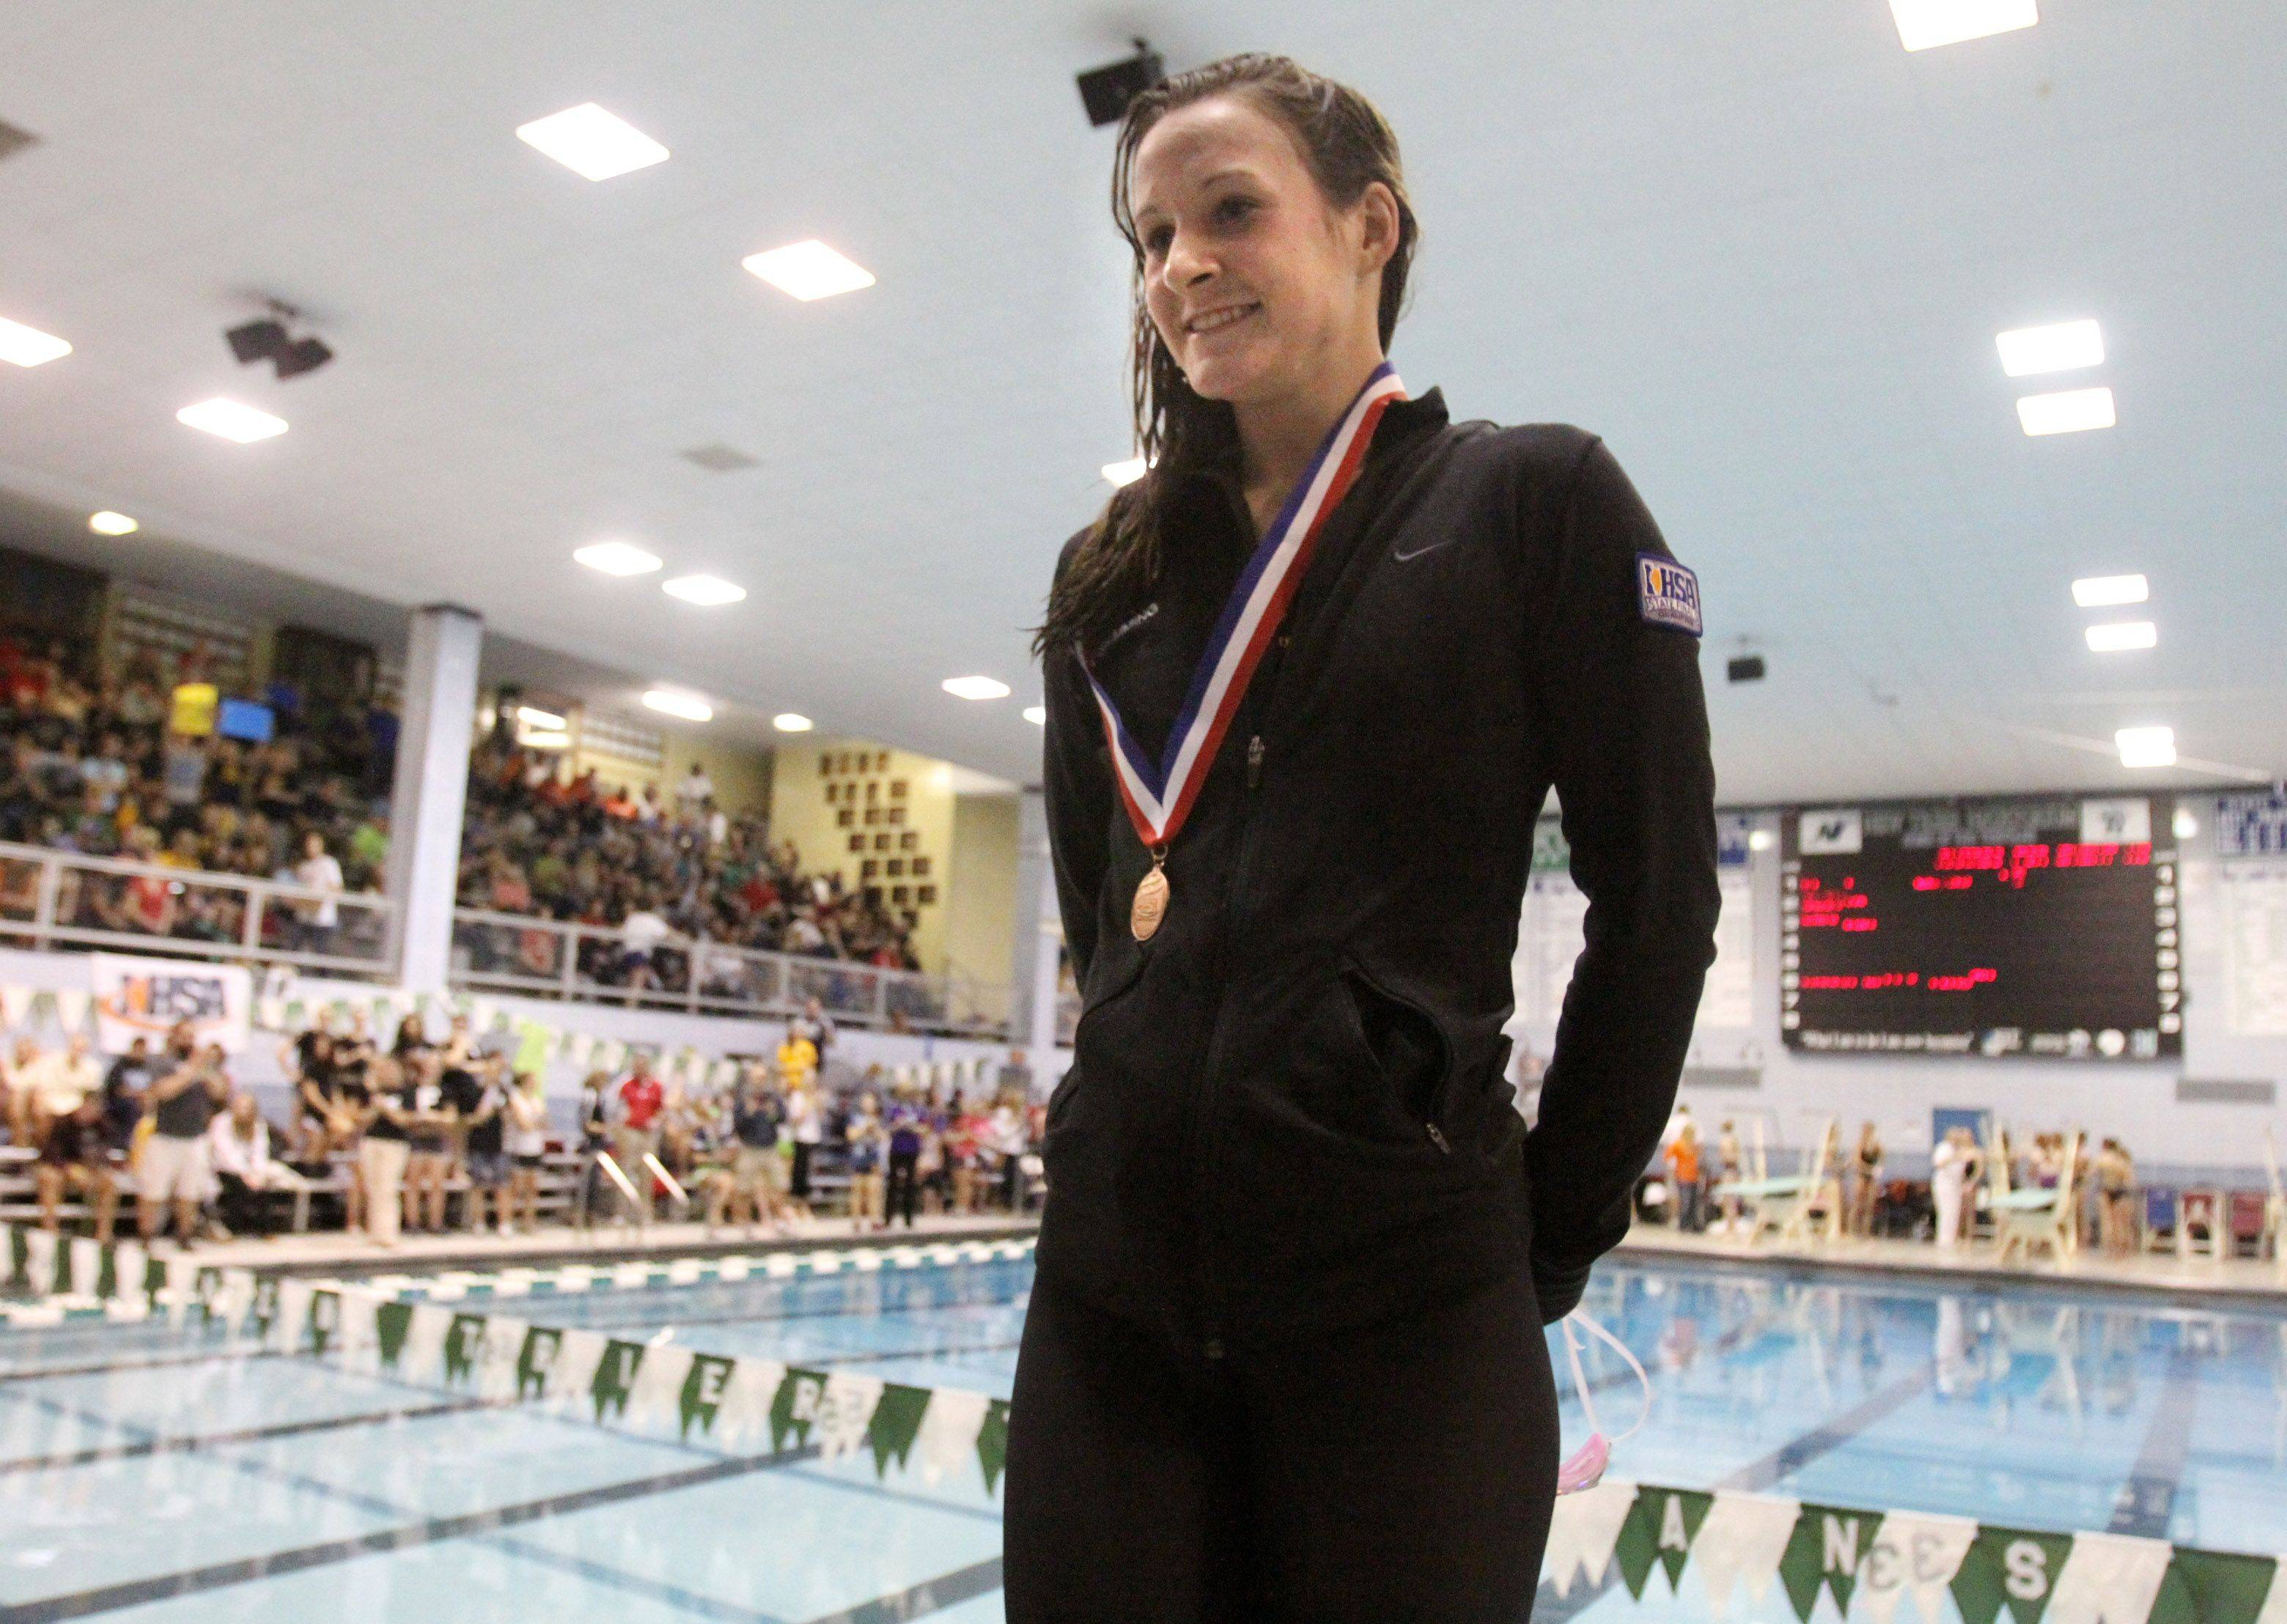 George Leclaire/gleclaire@dailyherald.comCrystal Lake Central-coop's Marisa Barton placed third in the 50-yard freestyle at IHSA state championships in Winnetka on Saturday, November 19th.